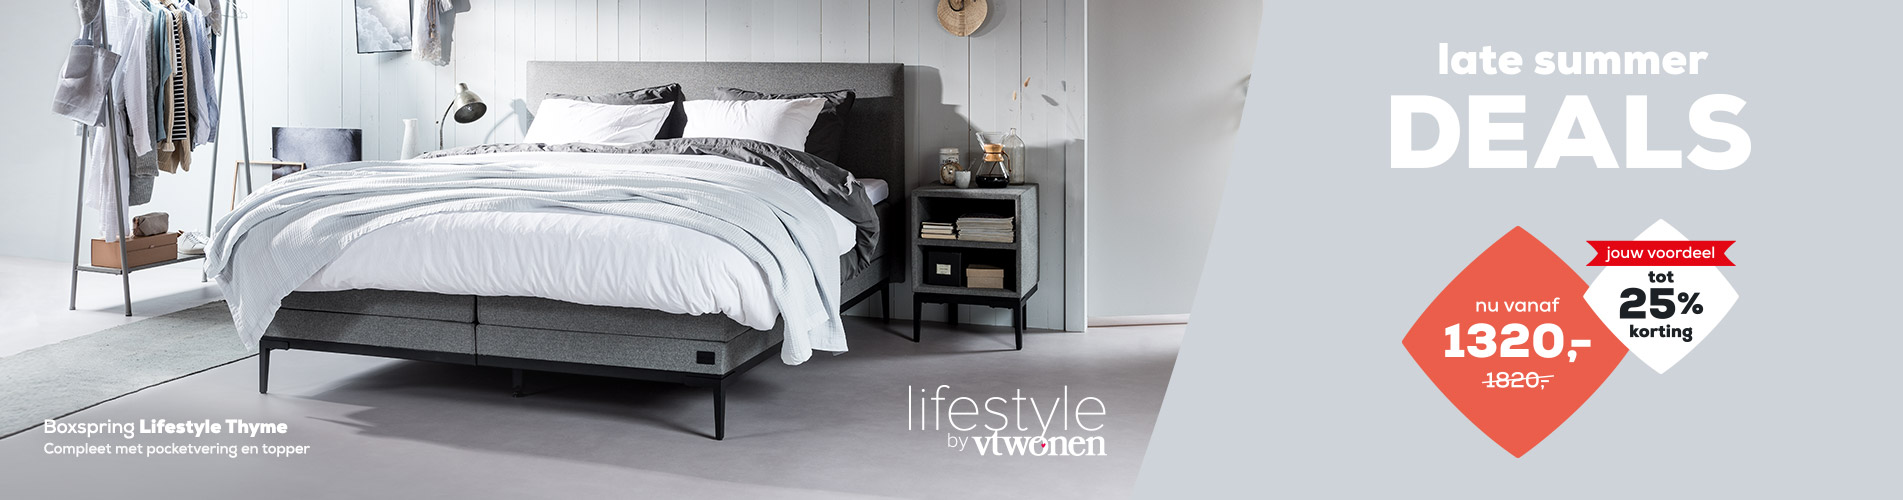 Boxspringcollectie Lifestyle tot 25% korting | Late Summer Deals | Swiss Sense